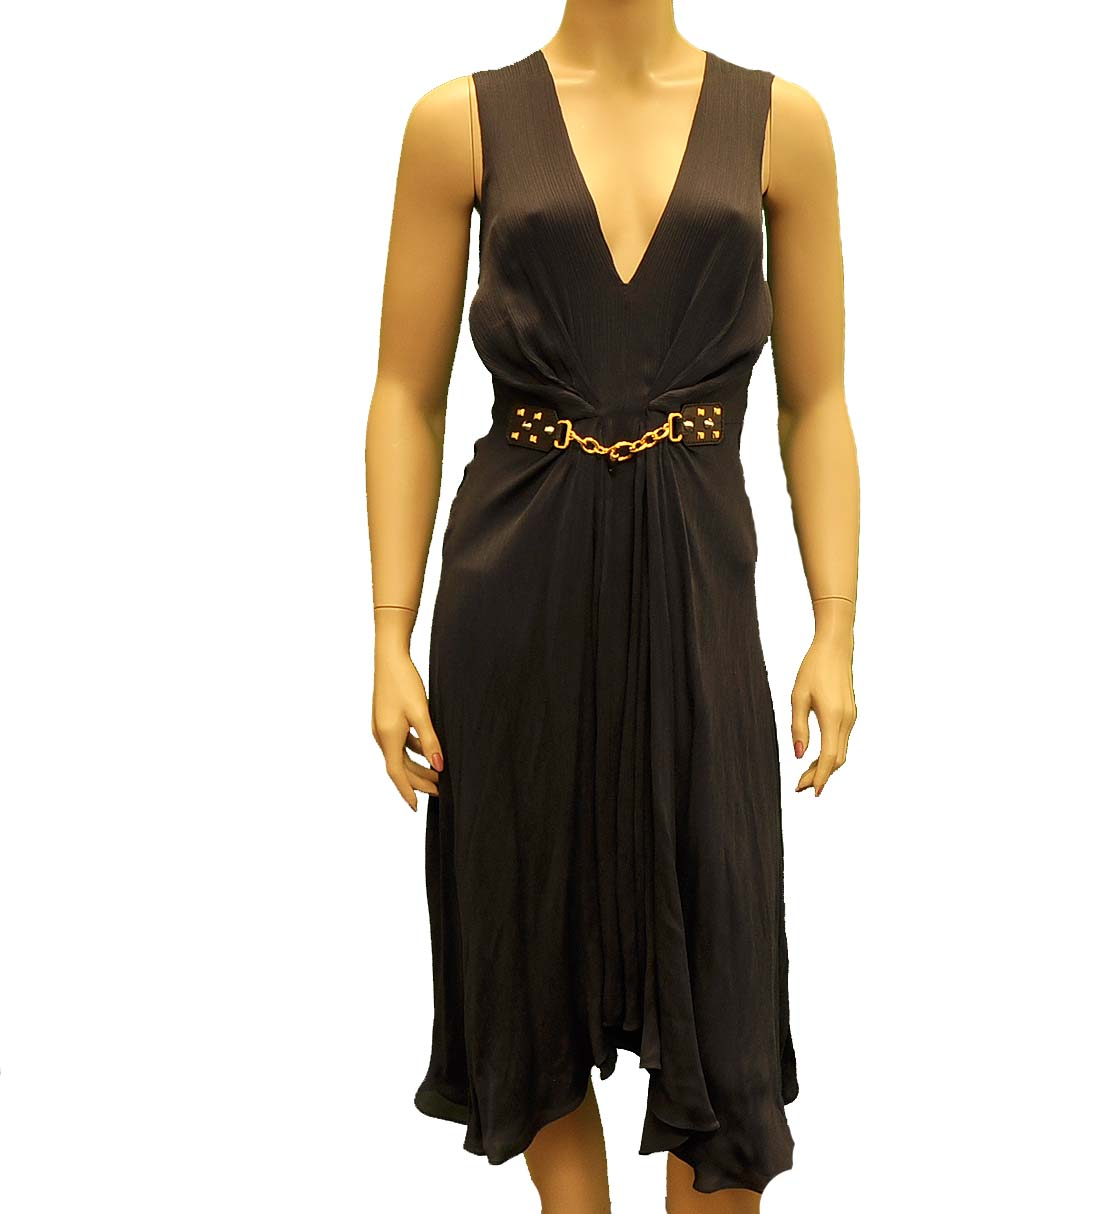 Monnari European Dress Size 38 US 4 Black Fitted Stretch Sleeveless Zip NWT See more like this VIPart In Love Size 38 Medium Stretch Tulle Overlay Dress Pre-Owned · Love · Size (Women's):M.